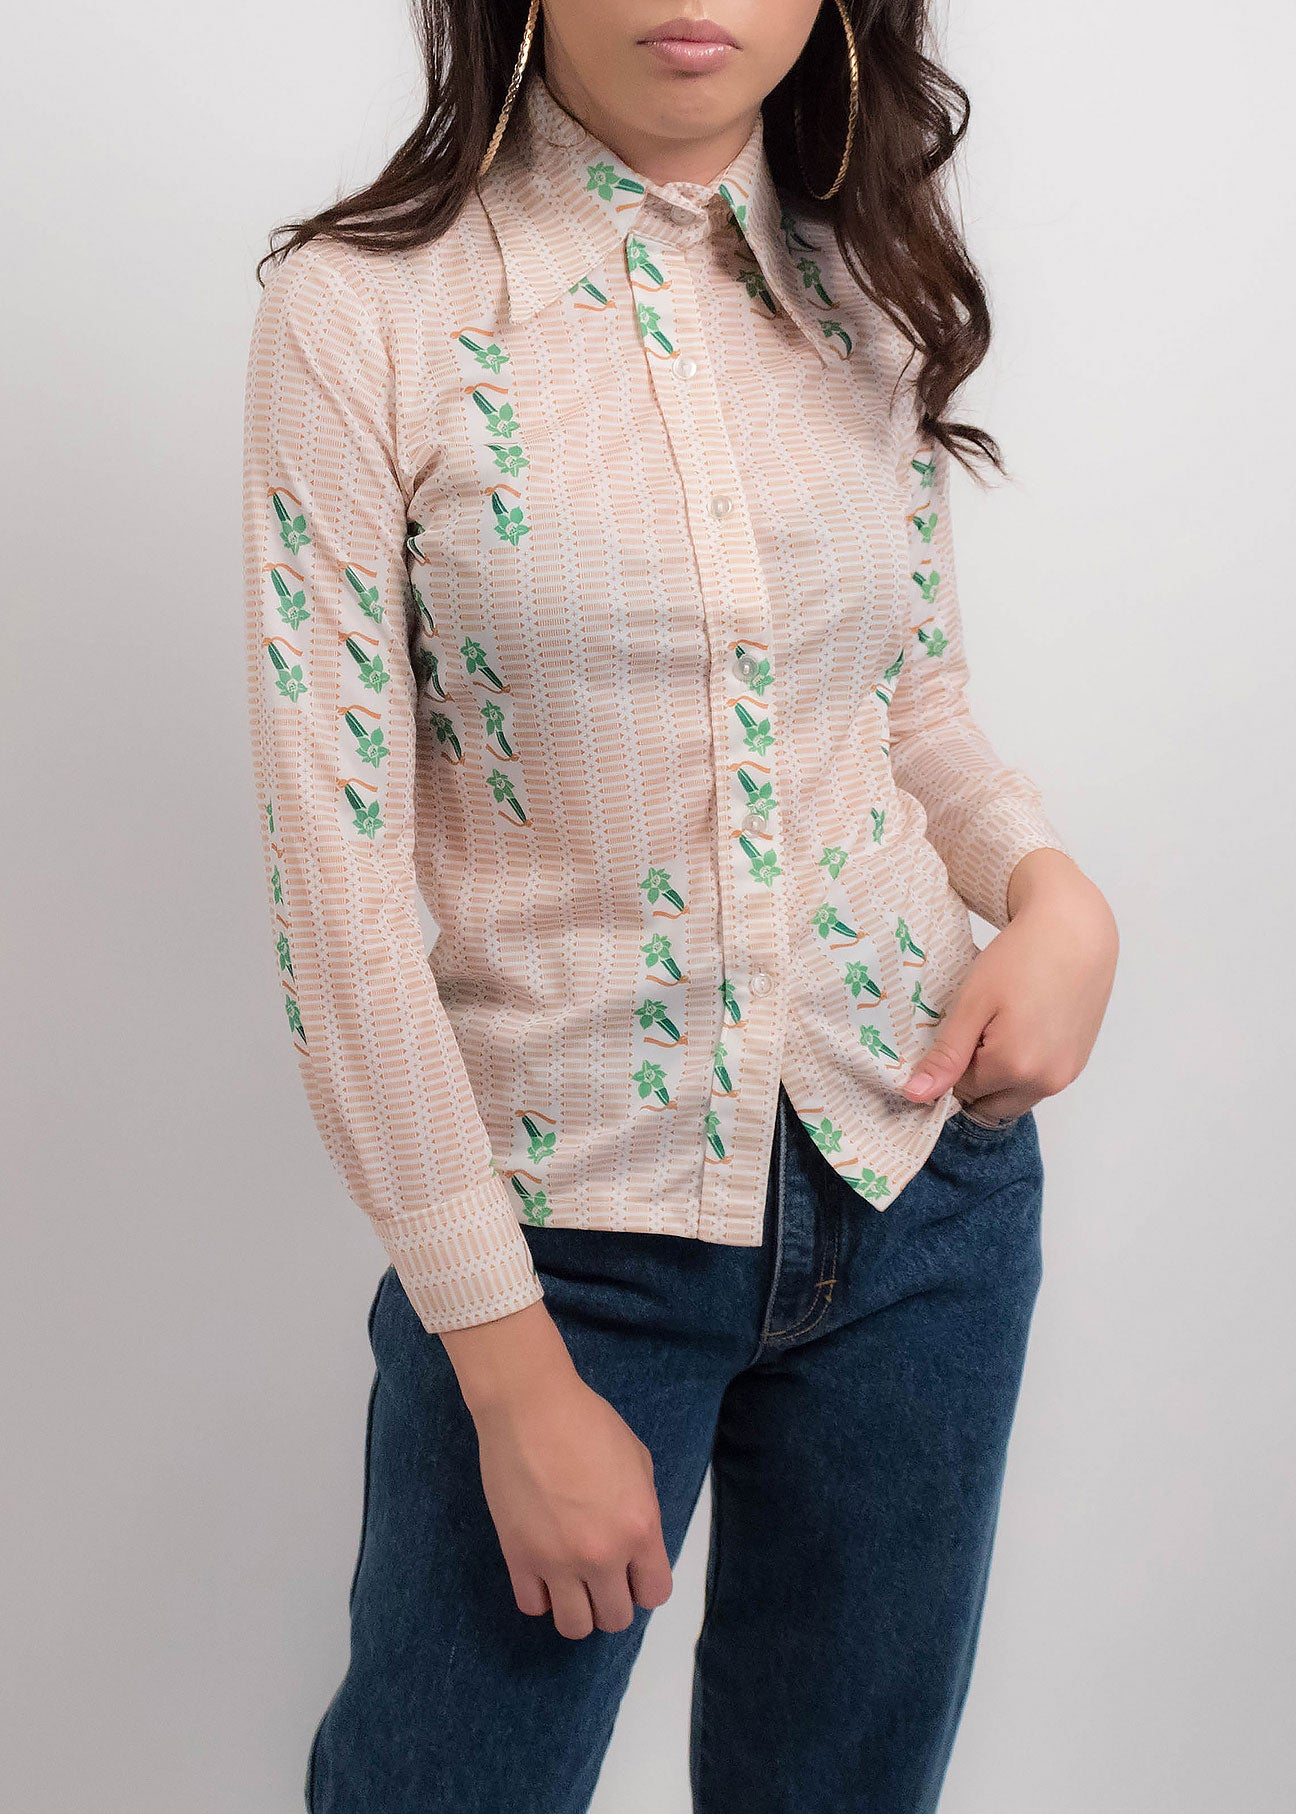 70s Floral Abstract Top